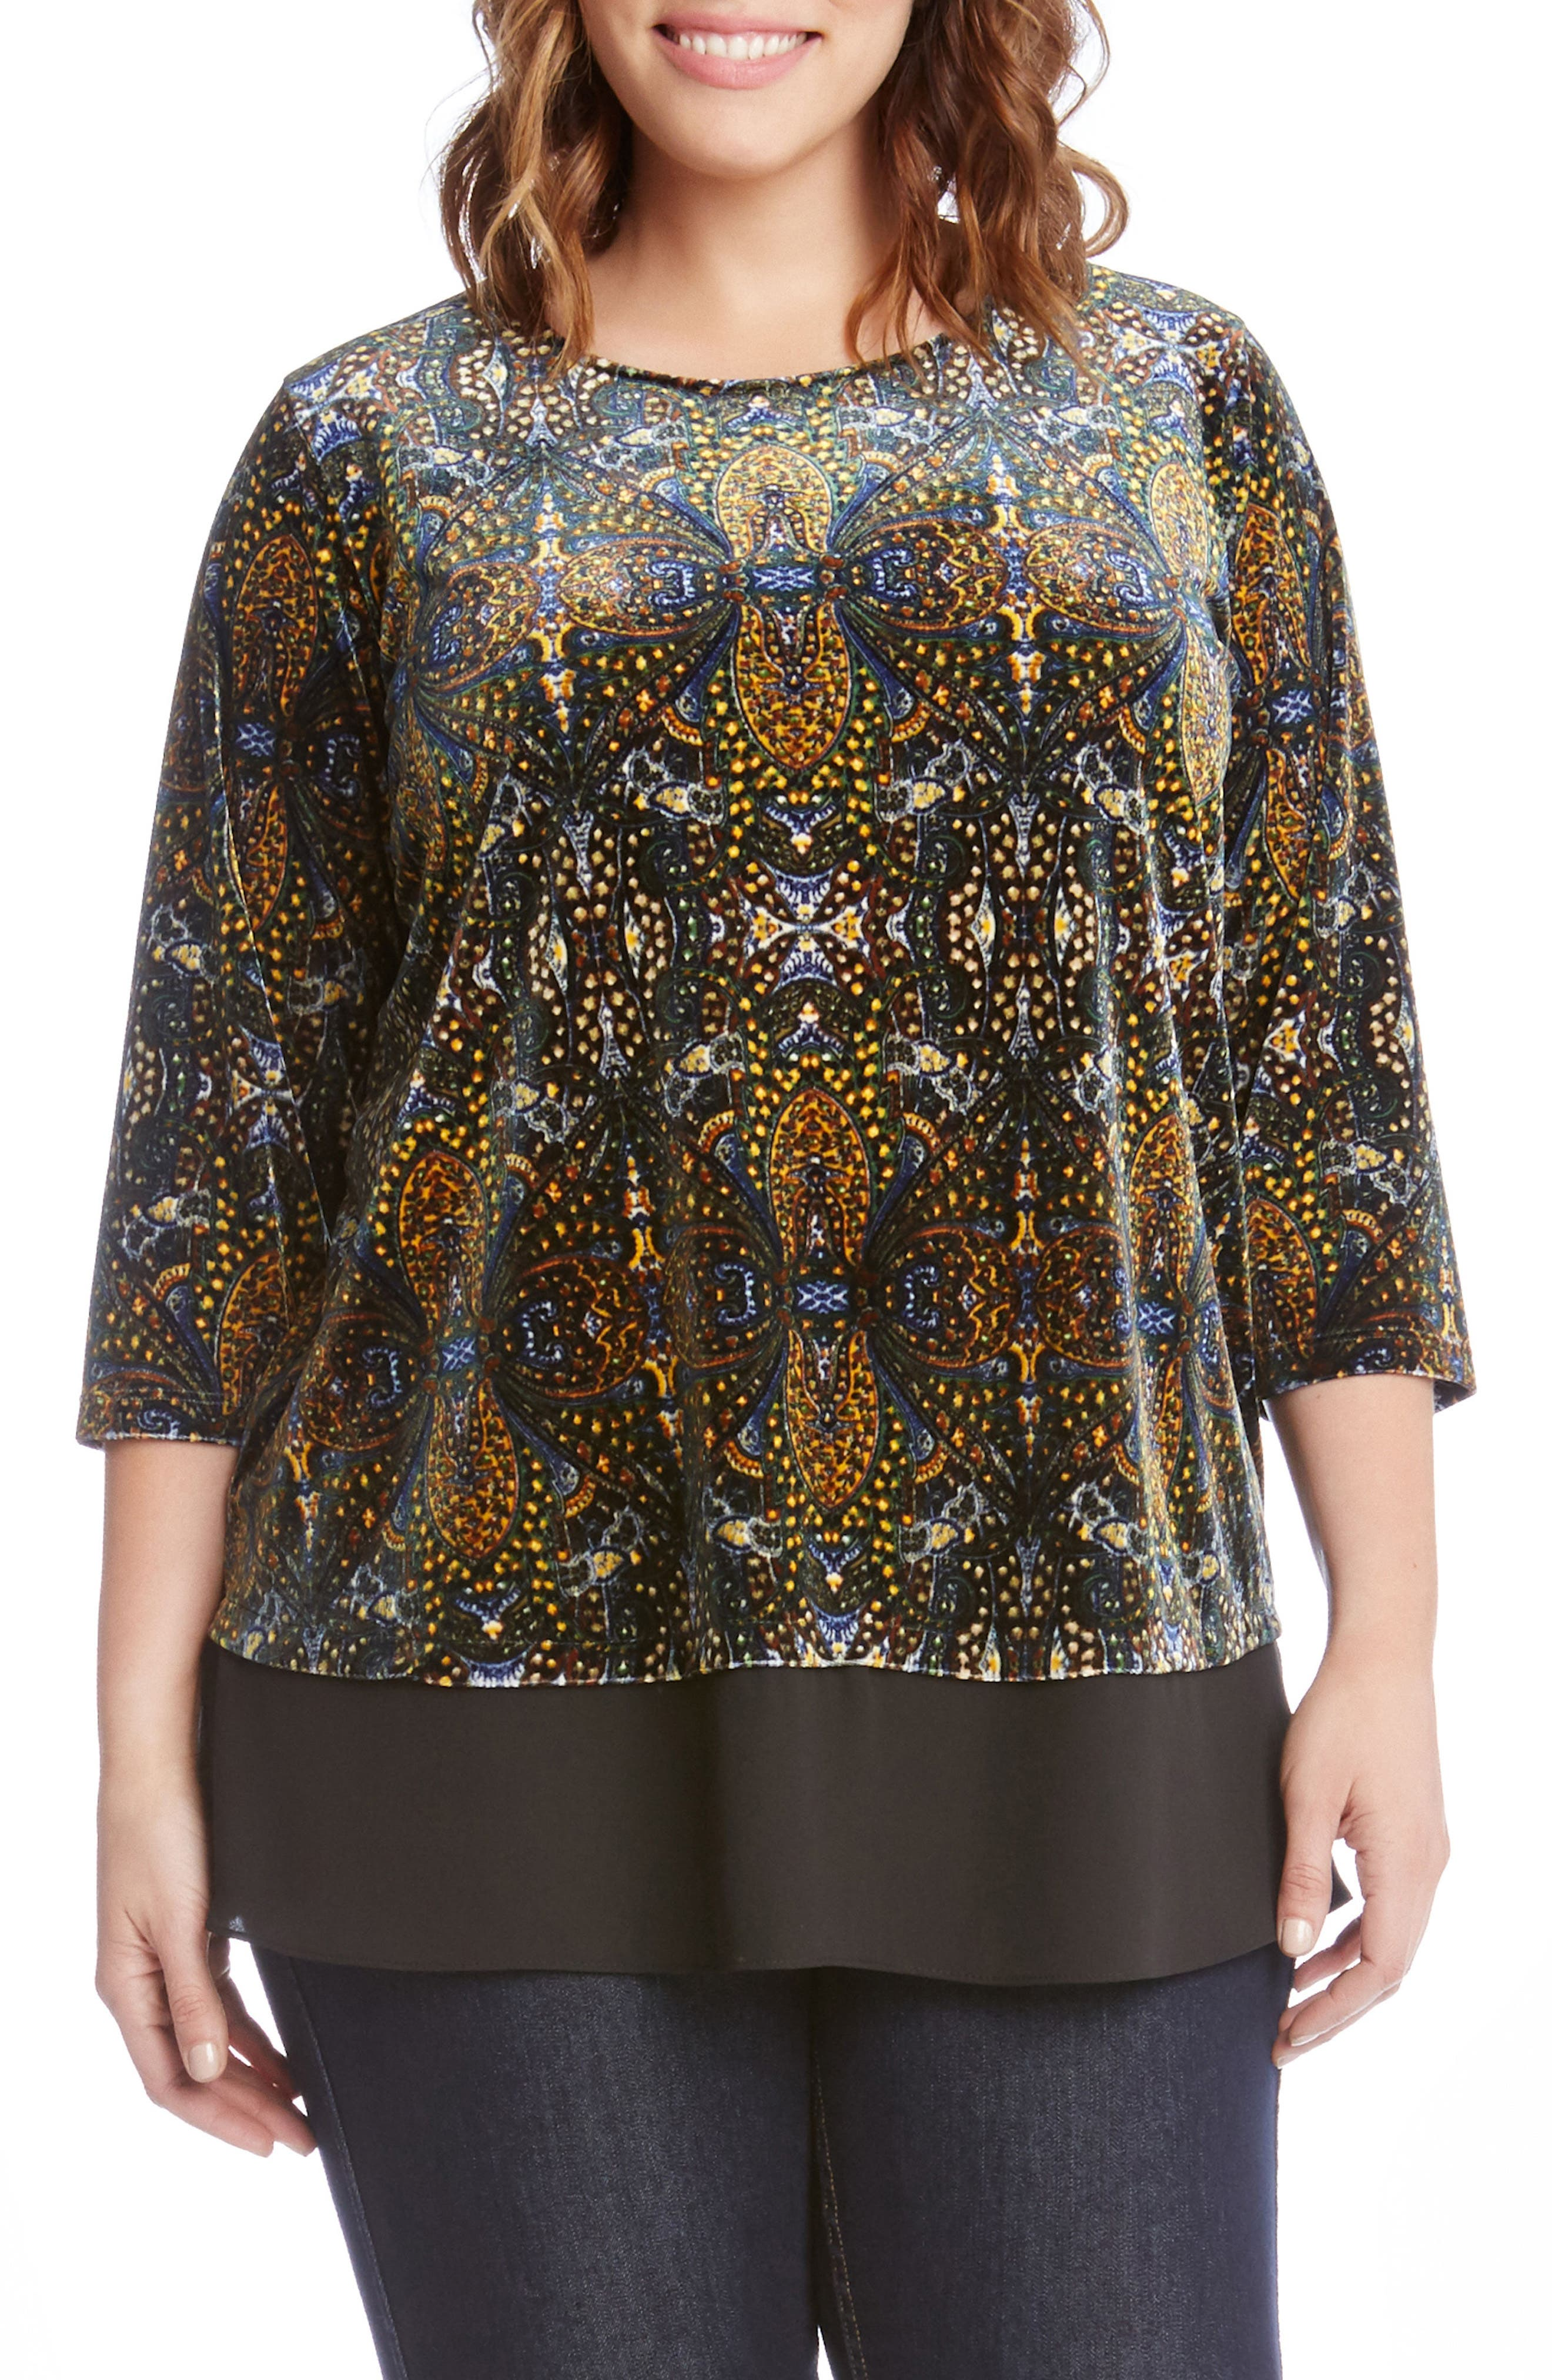 Alternate Image 1 Selected - Karen Kane Contrast Hem Print Velvet Top (Plus Size)